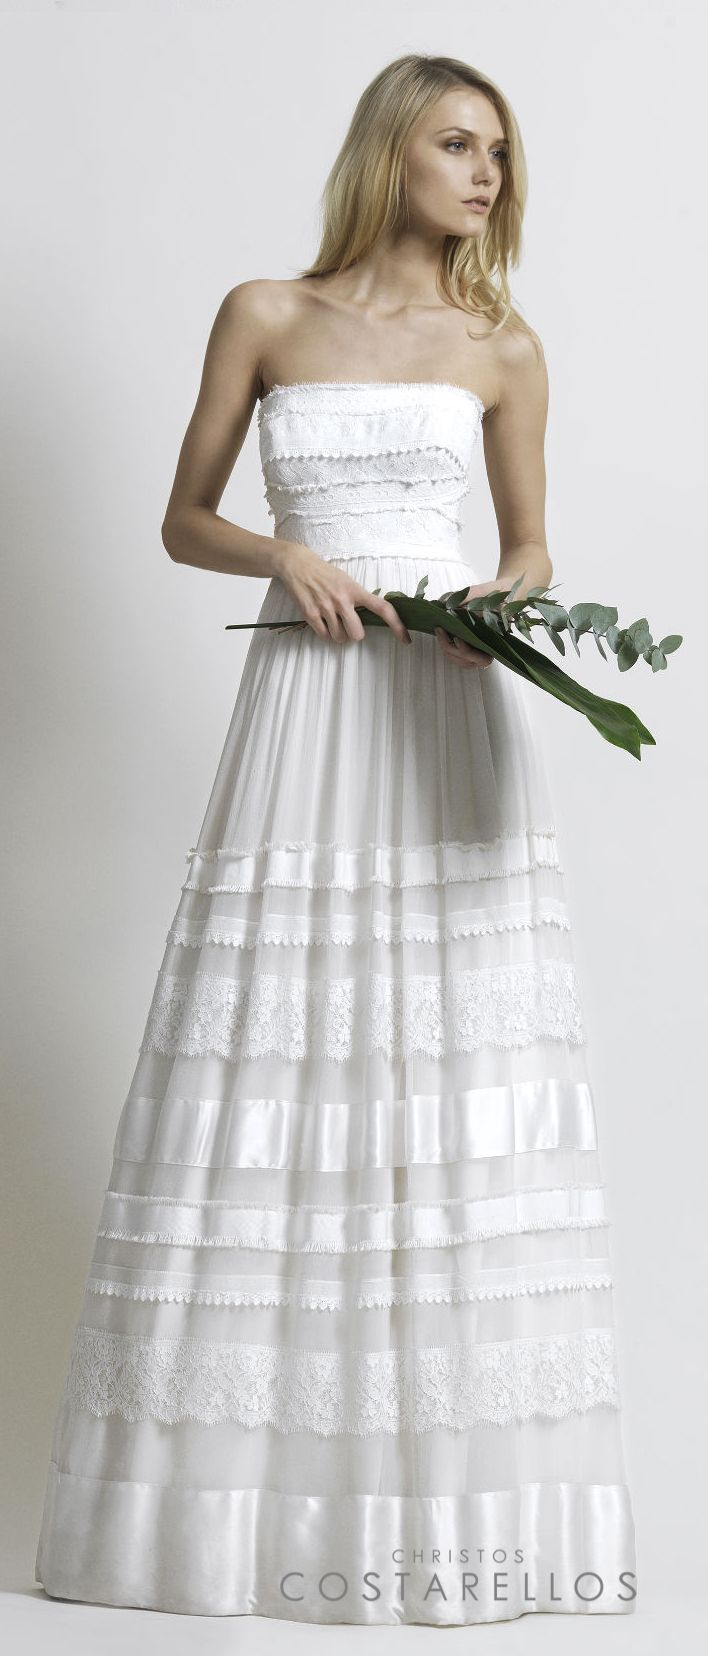 Christos Costarellos Bridal 2014 collection. A wedding dress made of silk muslin, with cotton lace and silk satin details. Code: BR14 24. For stockists please visit www.costarellos.com #christoscostarellos #costarellos #costarellosbride #bridaldress #bridalgown #weddingdress #weddinggown #lace #bridetobe #bridalmarket #bridalfashion #wedding